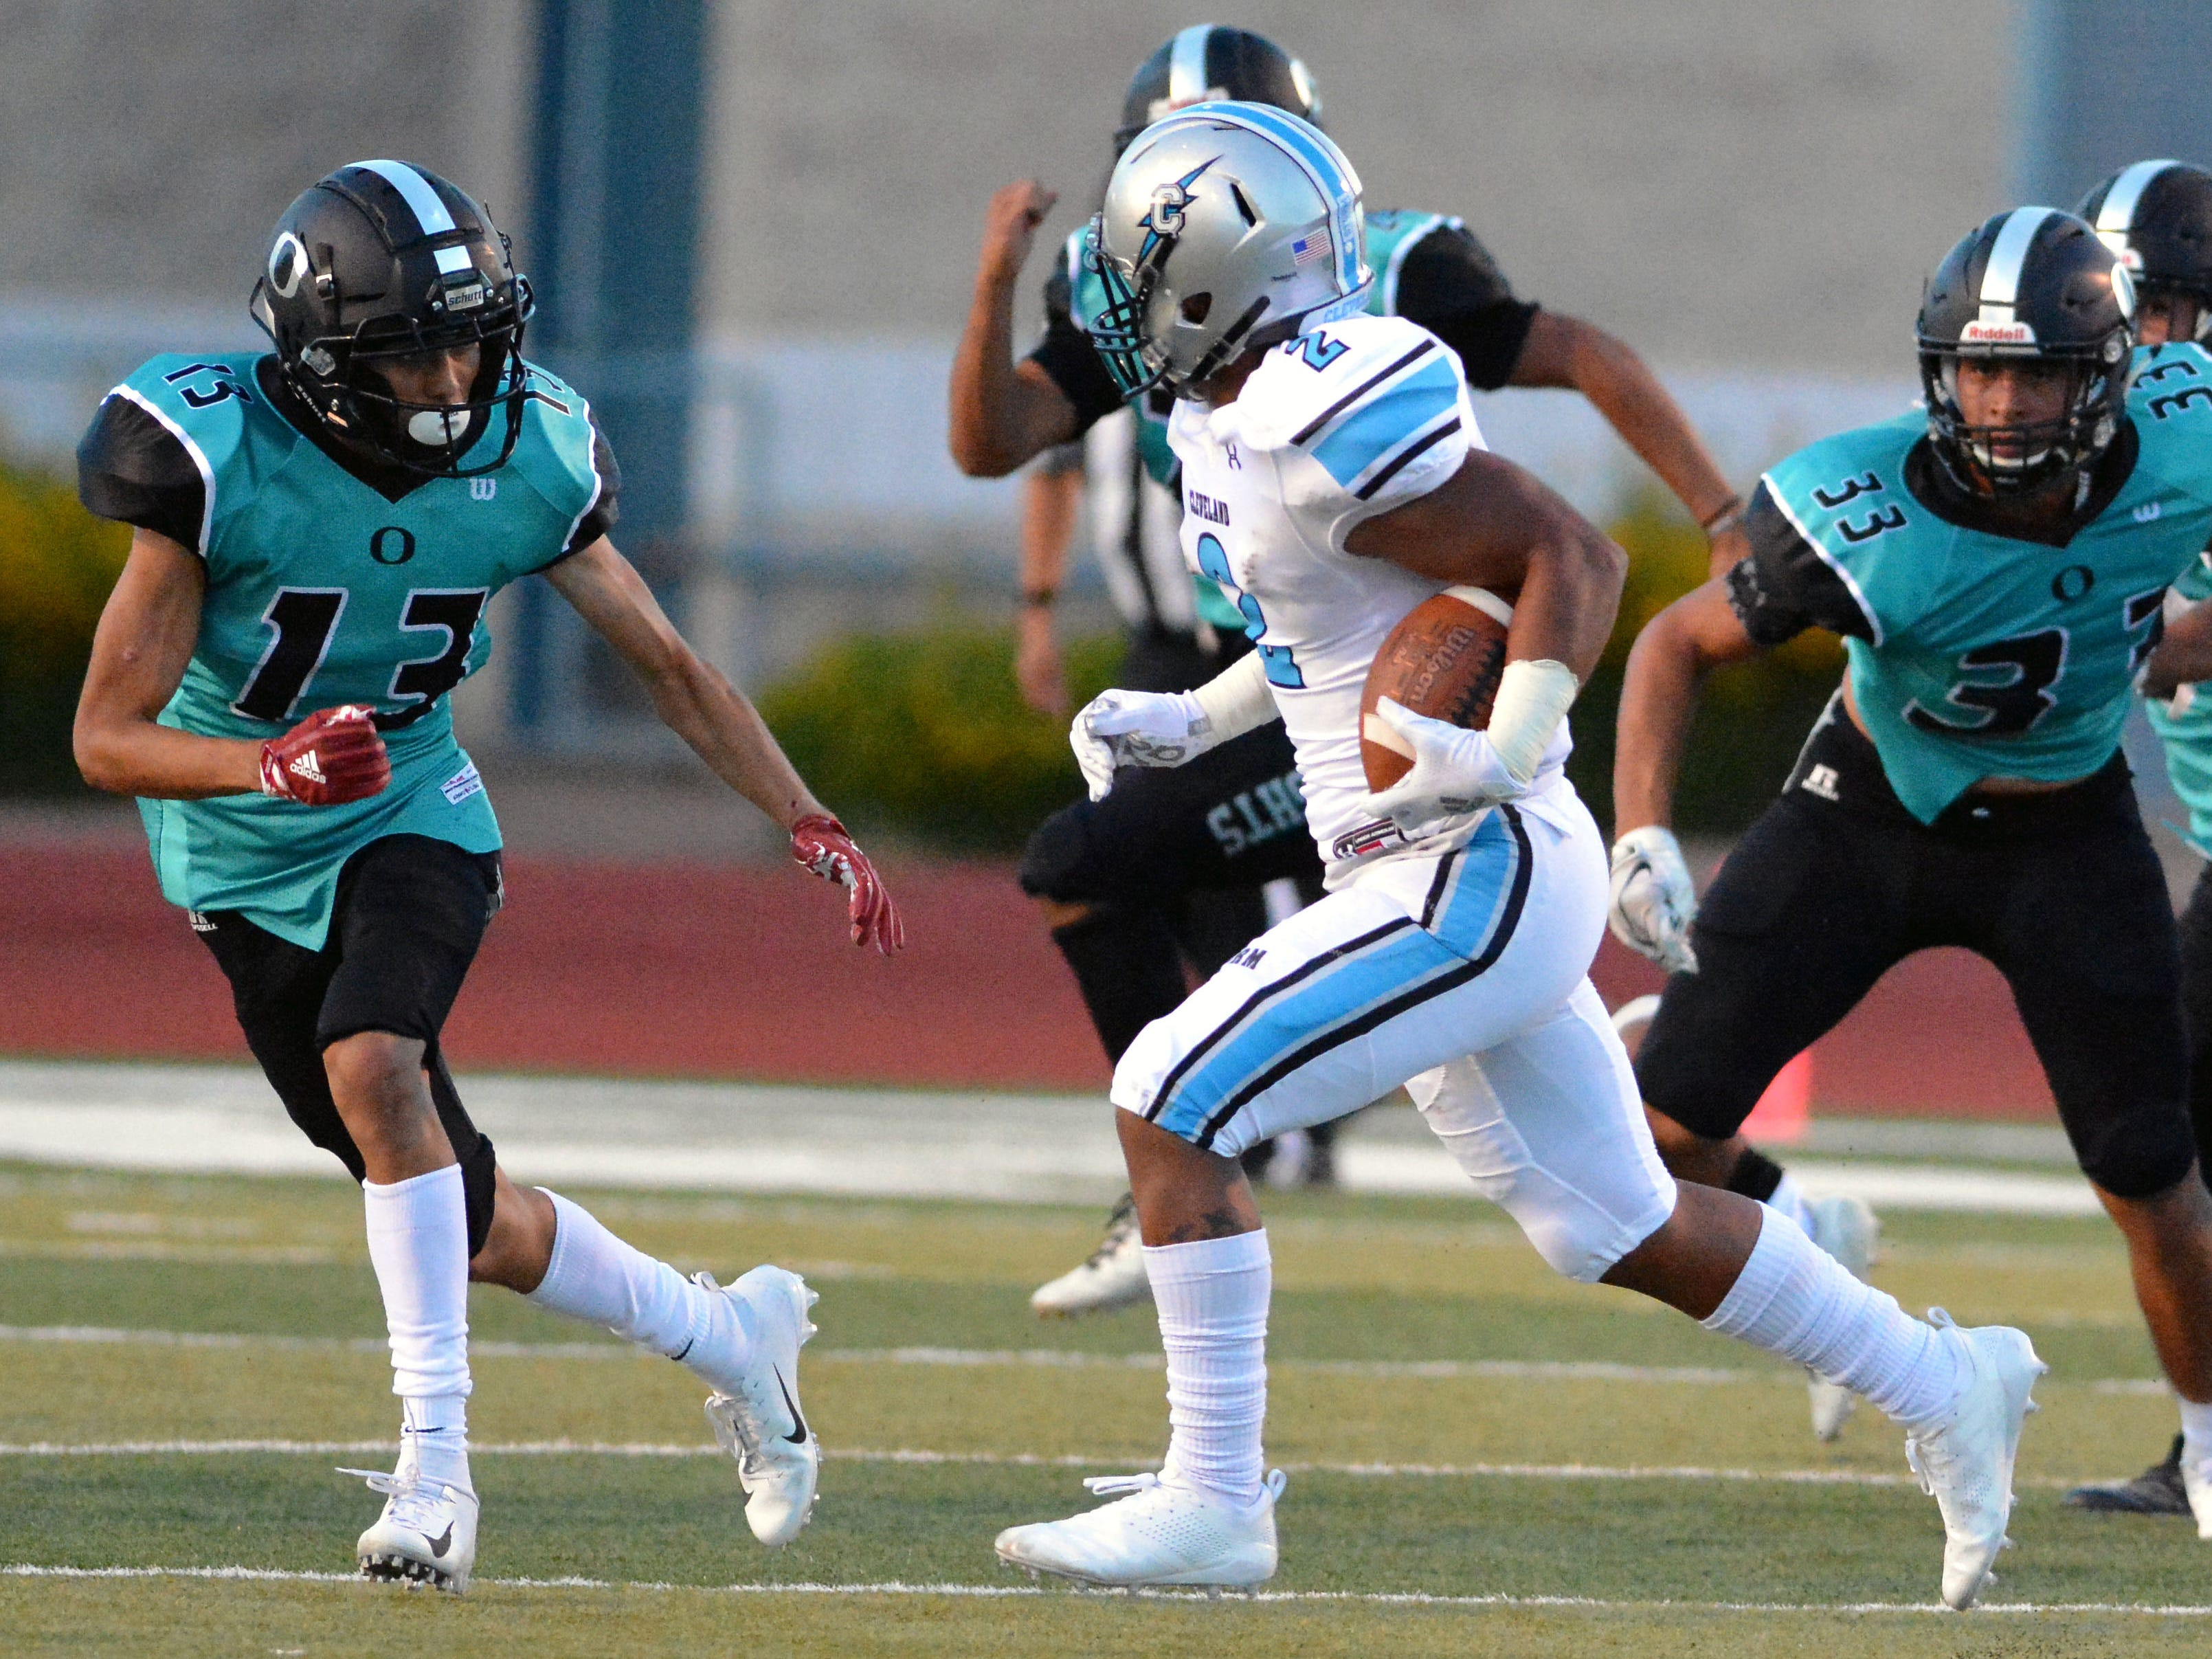 Oñate defensive back Justin Gutierrez (13) and Linebacker Daniel Diaz (33) get ready to tackle Cleveland's Dorian Lewis Friday night at the Field of Dreams.